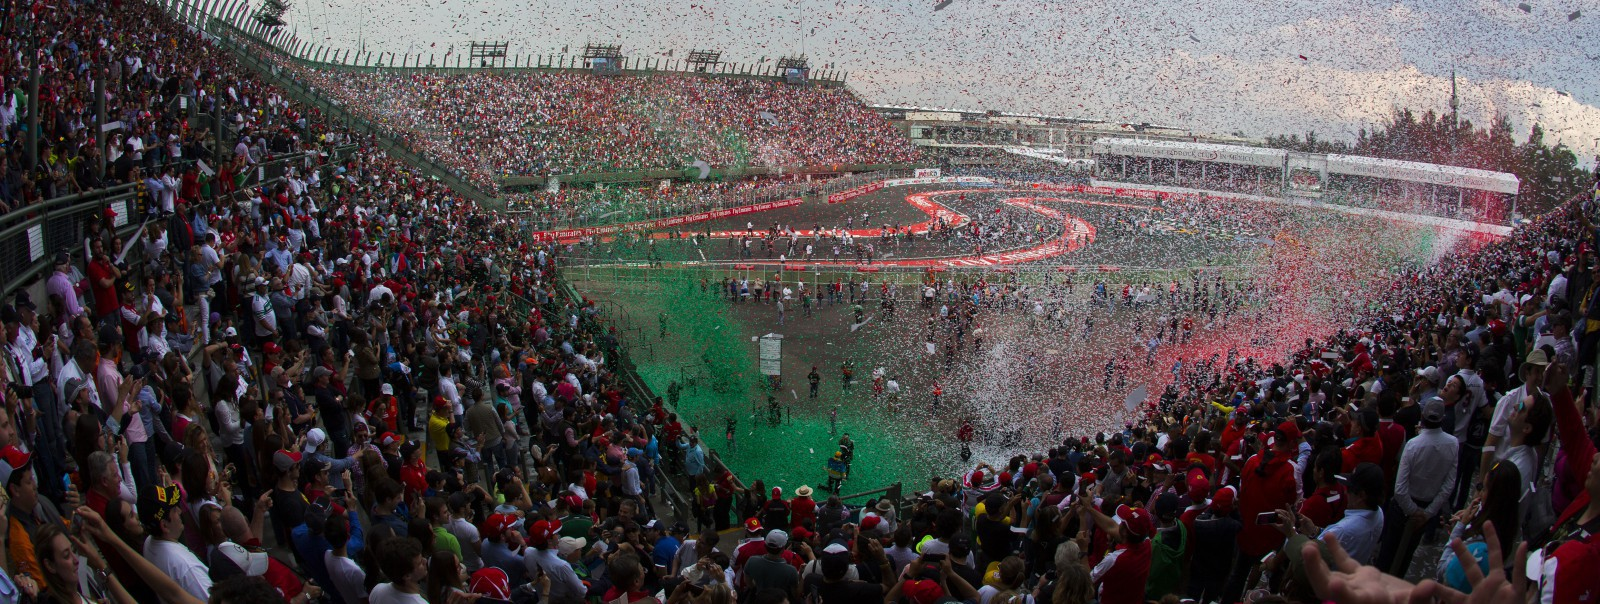 Motorsports: FIA Formula One World Championship 2015, Grand Prix of Mexico